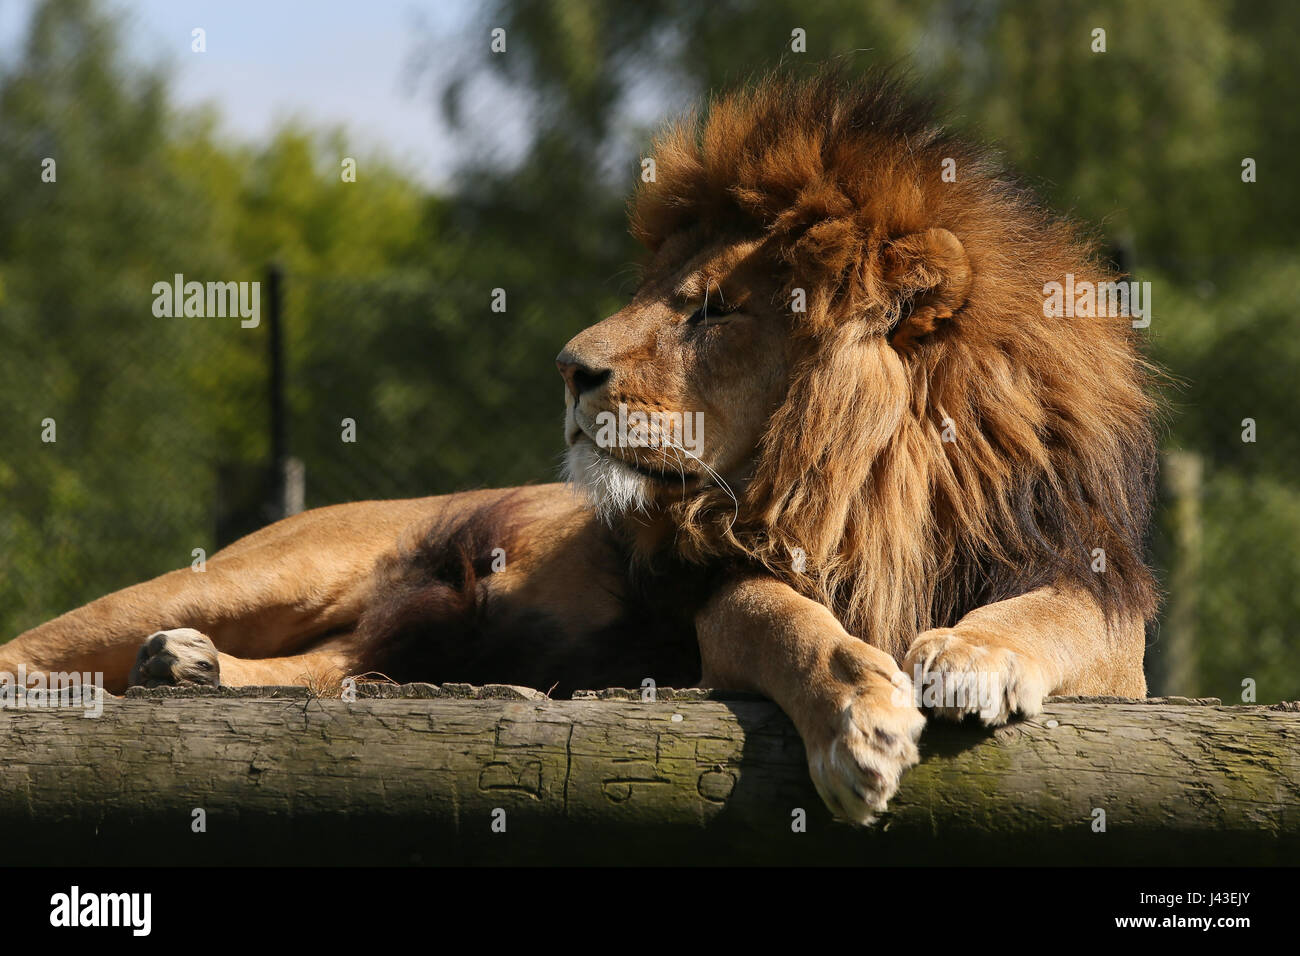 Lion a Knowsley Safari, Prescot, Regno Unito Immagini Stock